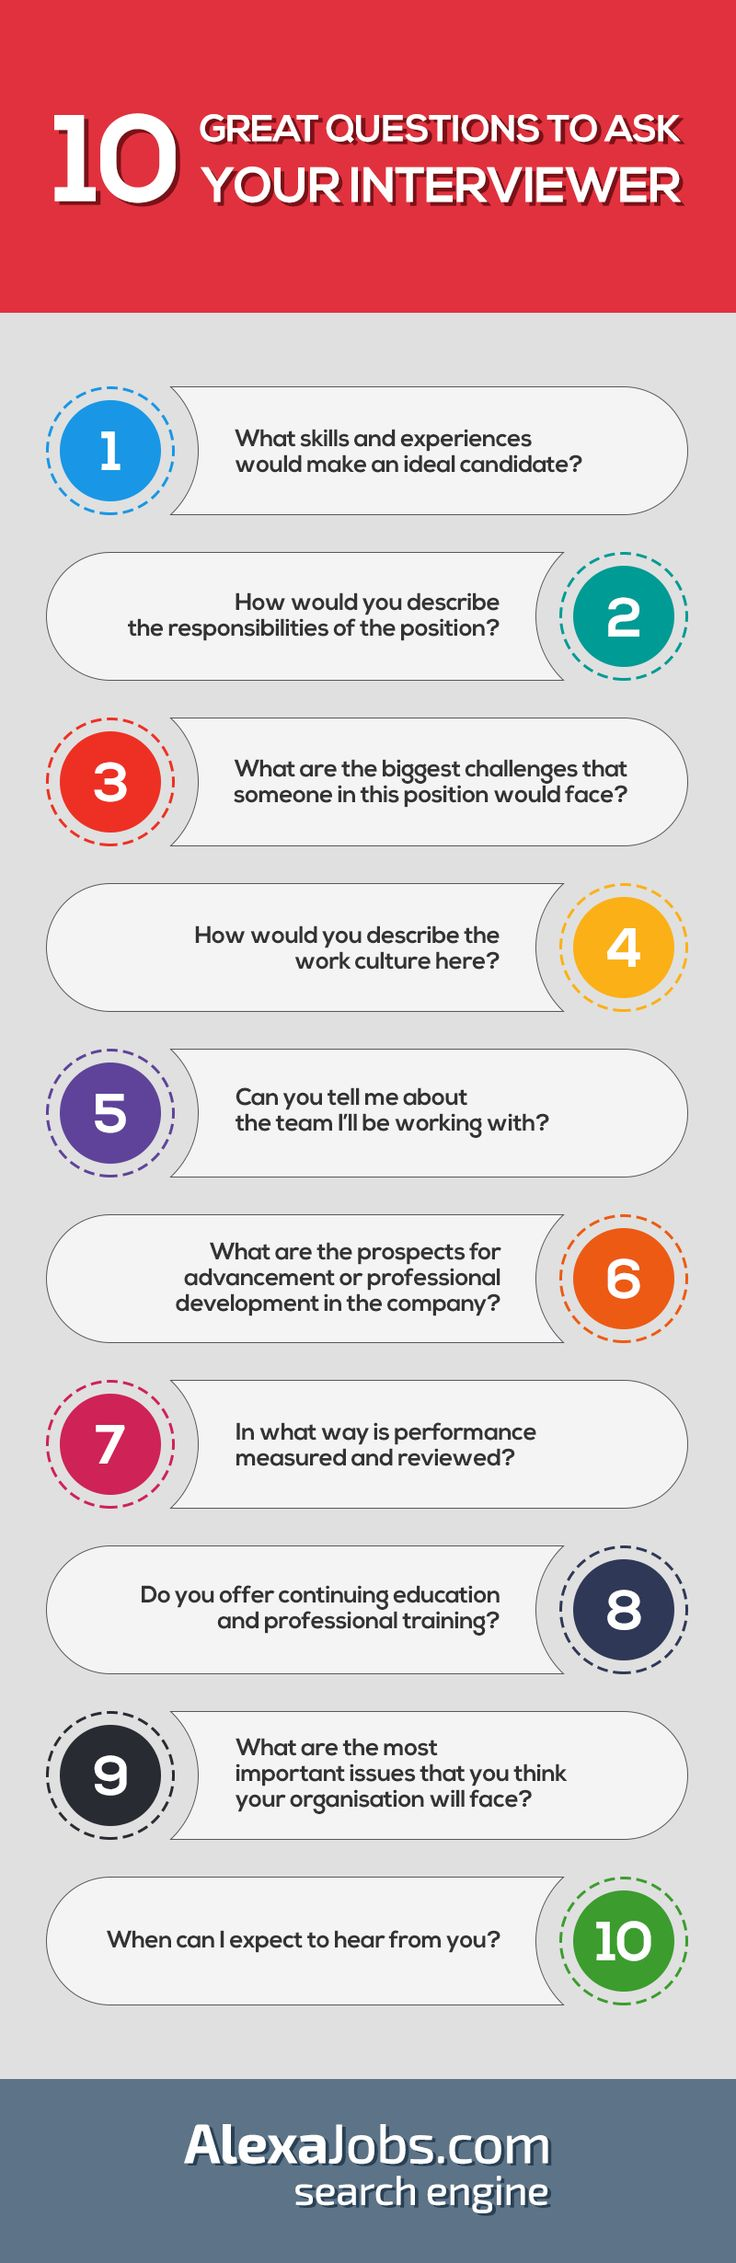 best ideas about questions asked in interview infographic often job interviews can feel like an interrogation but they re meant to be a conversation between you and a potential employer